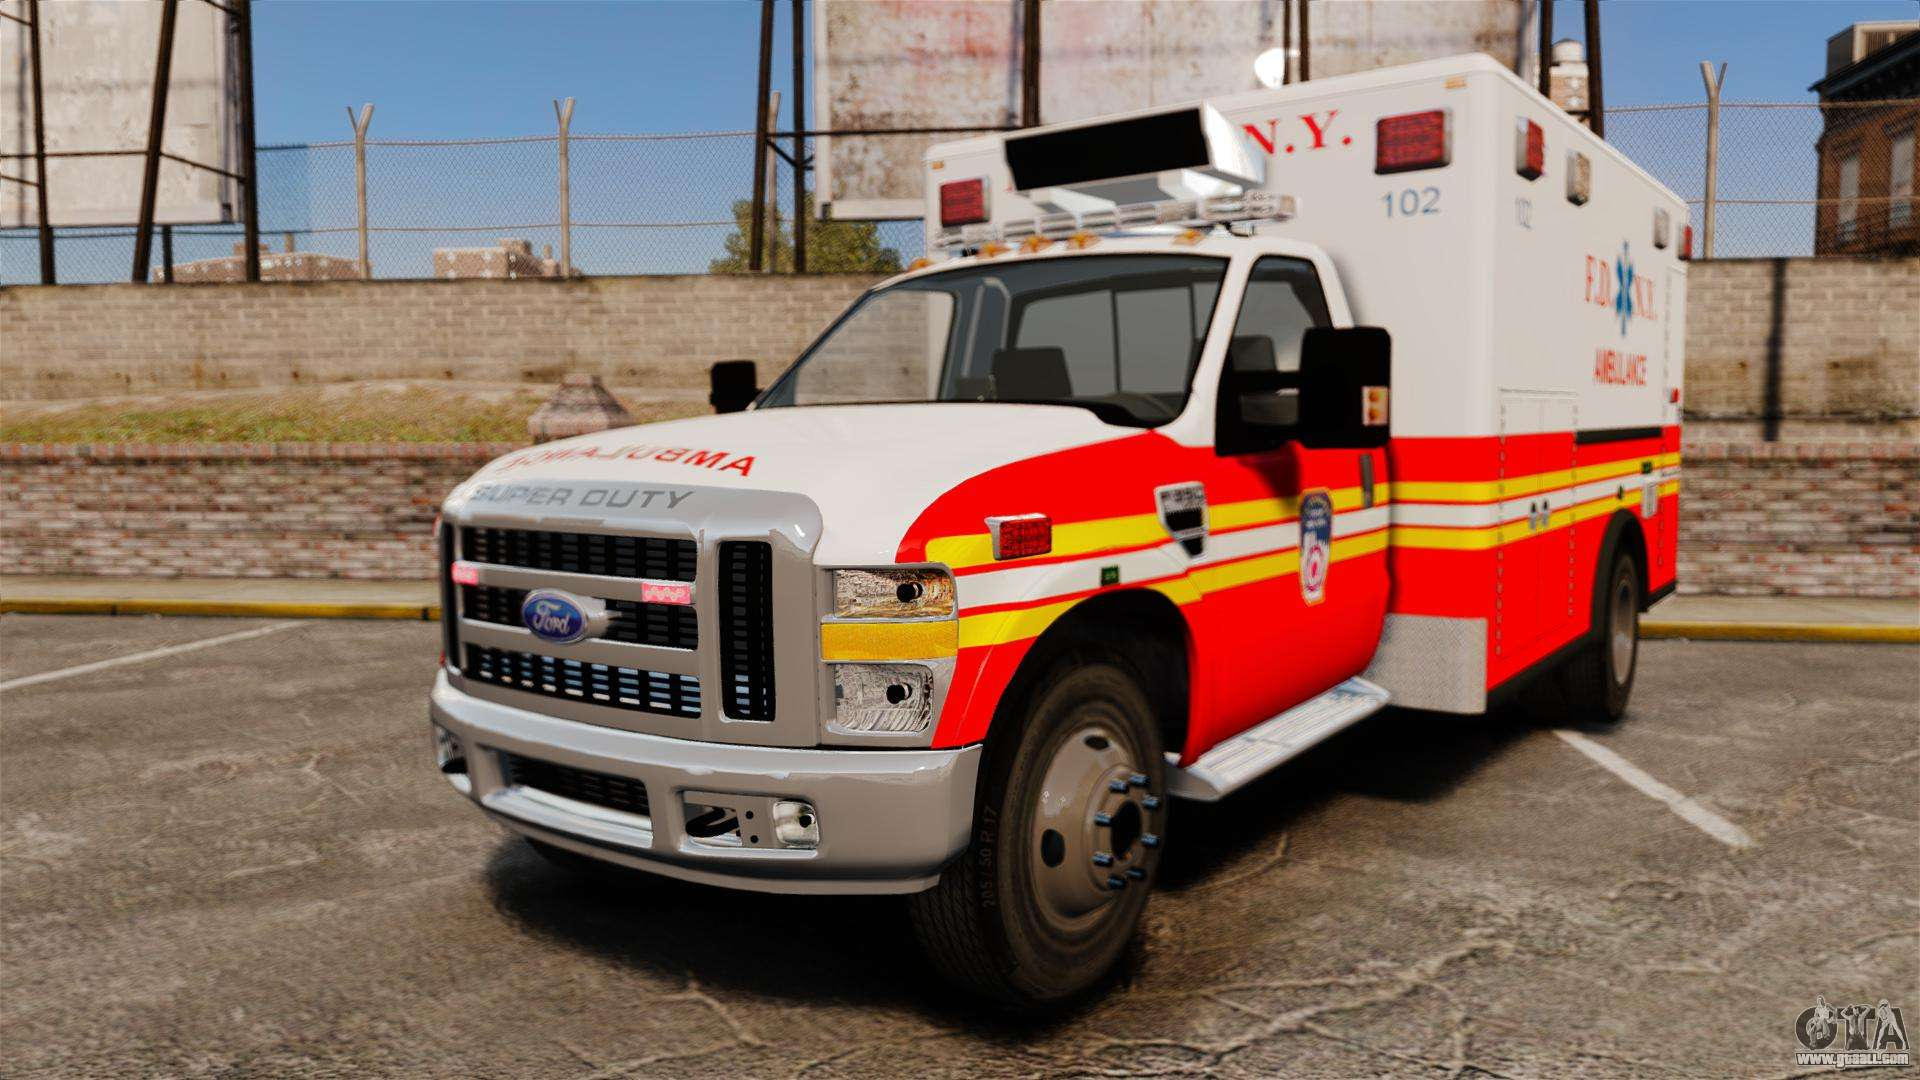 37822 Ford F 350 Fdny Ambulance Els additionally Ford F550 further Torno rectificador 04 together with Watch also Watch. on 02 f350